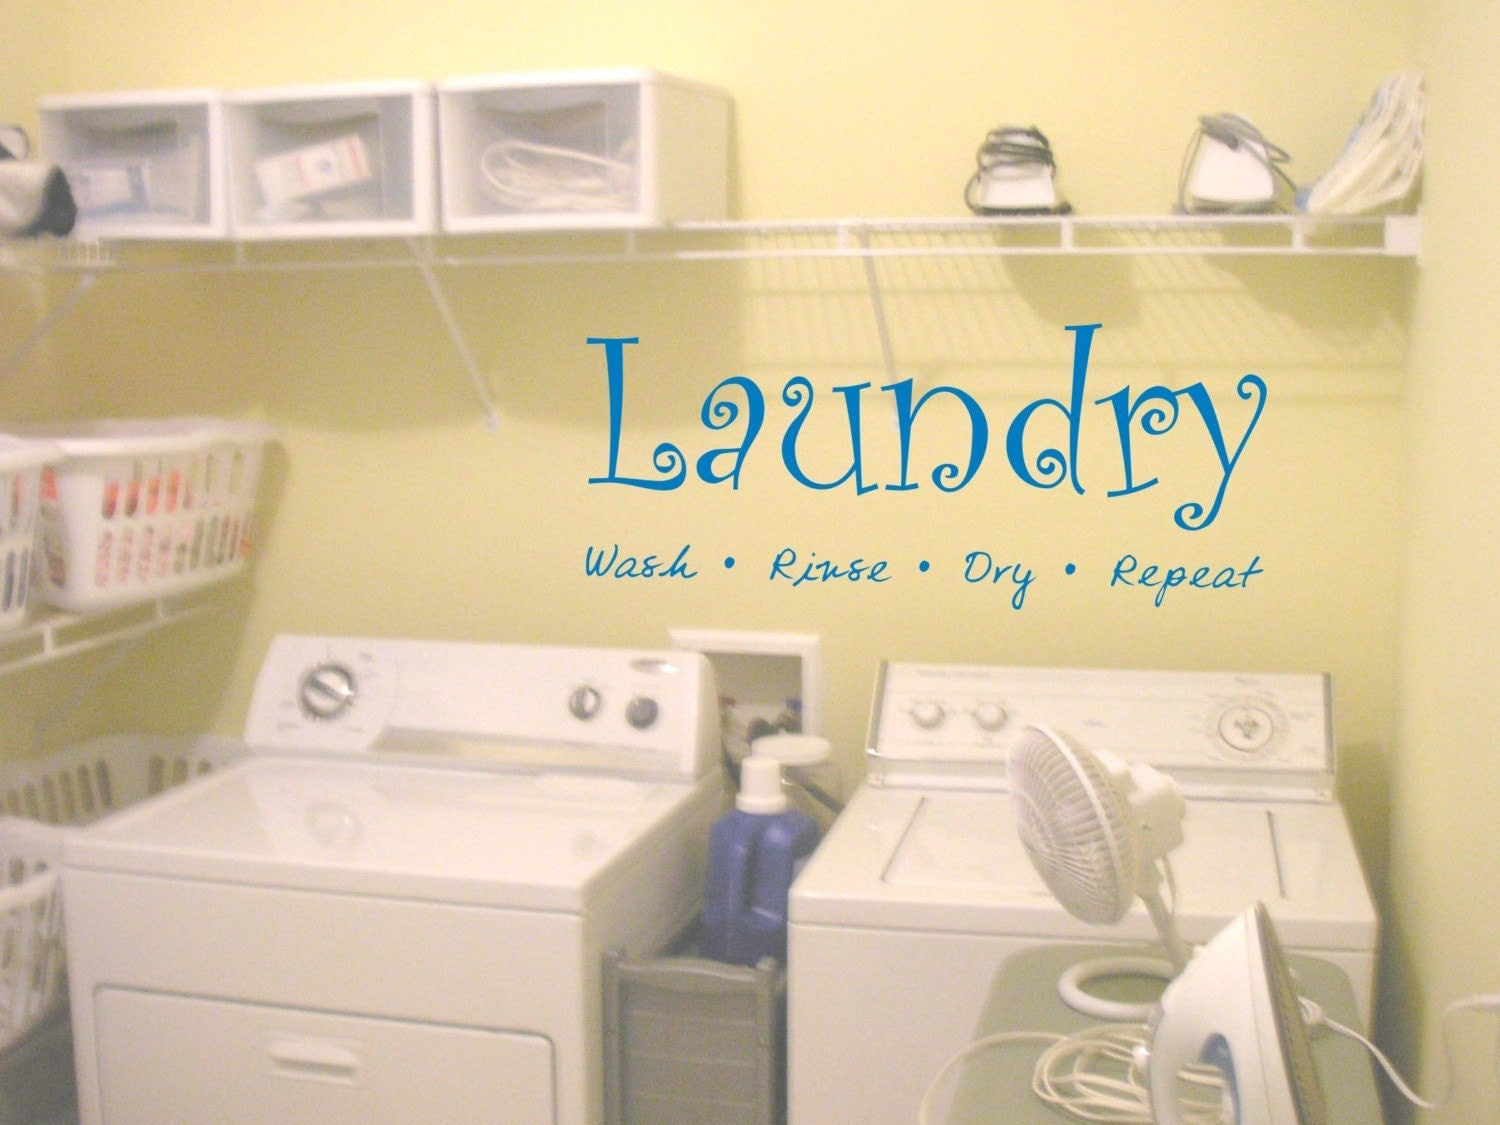 Laundry Room Pictures For Walls   Simple Home Decoration